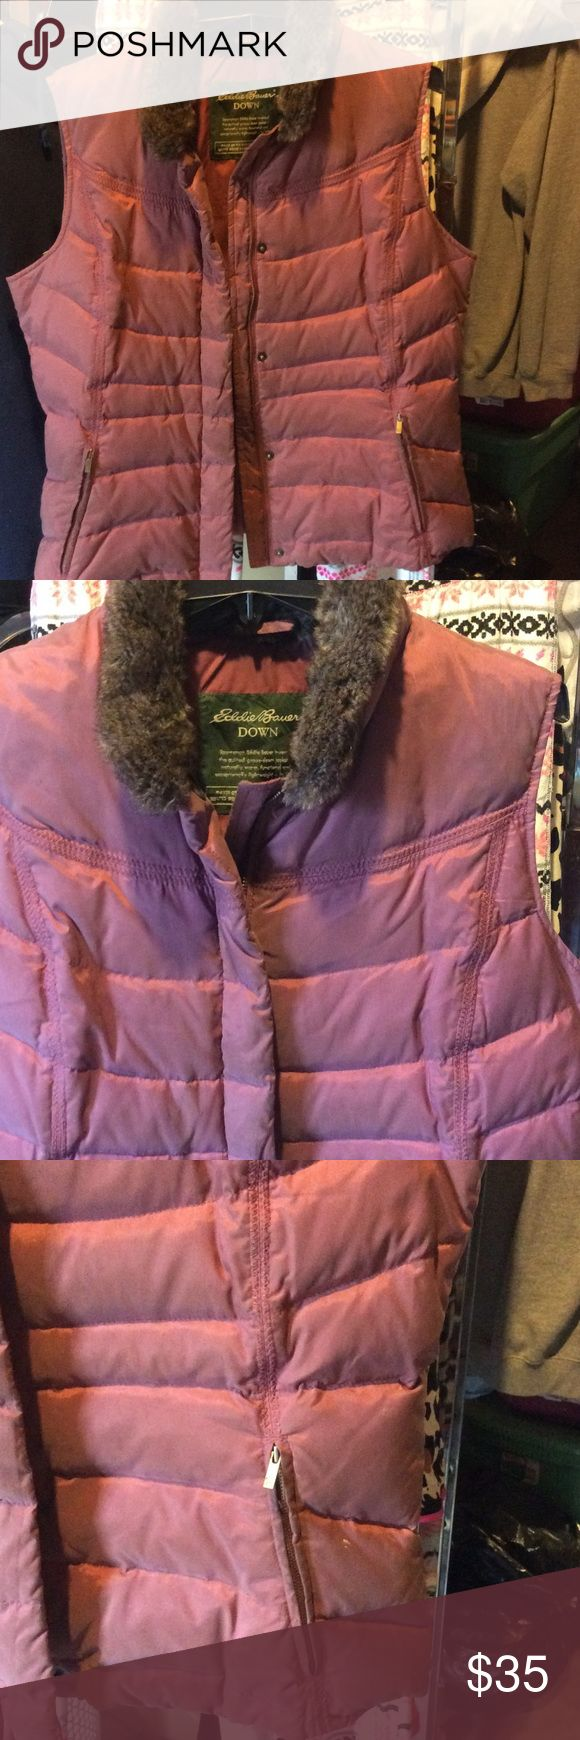 SALE -Eddie Bauer down ski vest Cranberry/wine like color quilted goose-down with zipper and button down front zipper pockets sets right below waistline. Love this vest definitely keeps you warm , worn a lot but no rips or tears , color faded from wear, well made will need to be dry cleaned Eddie Bauer Jackets & Coats Vests